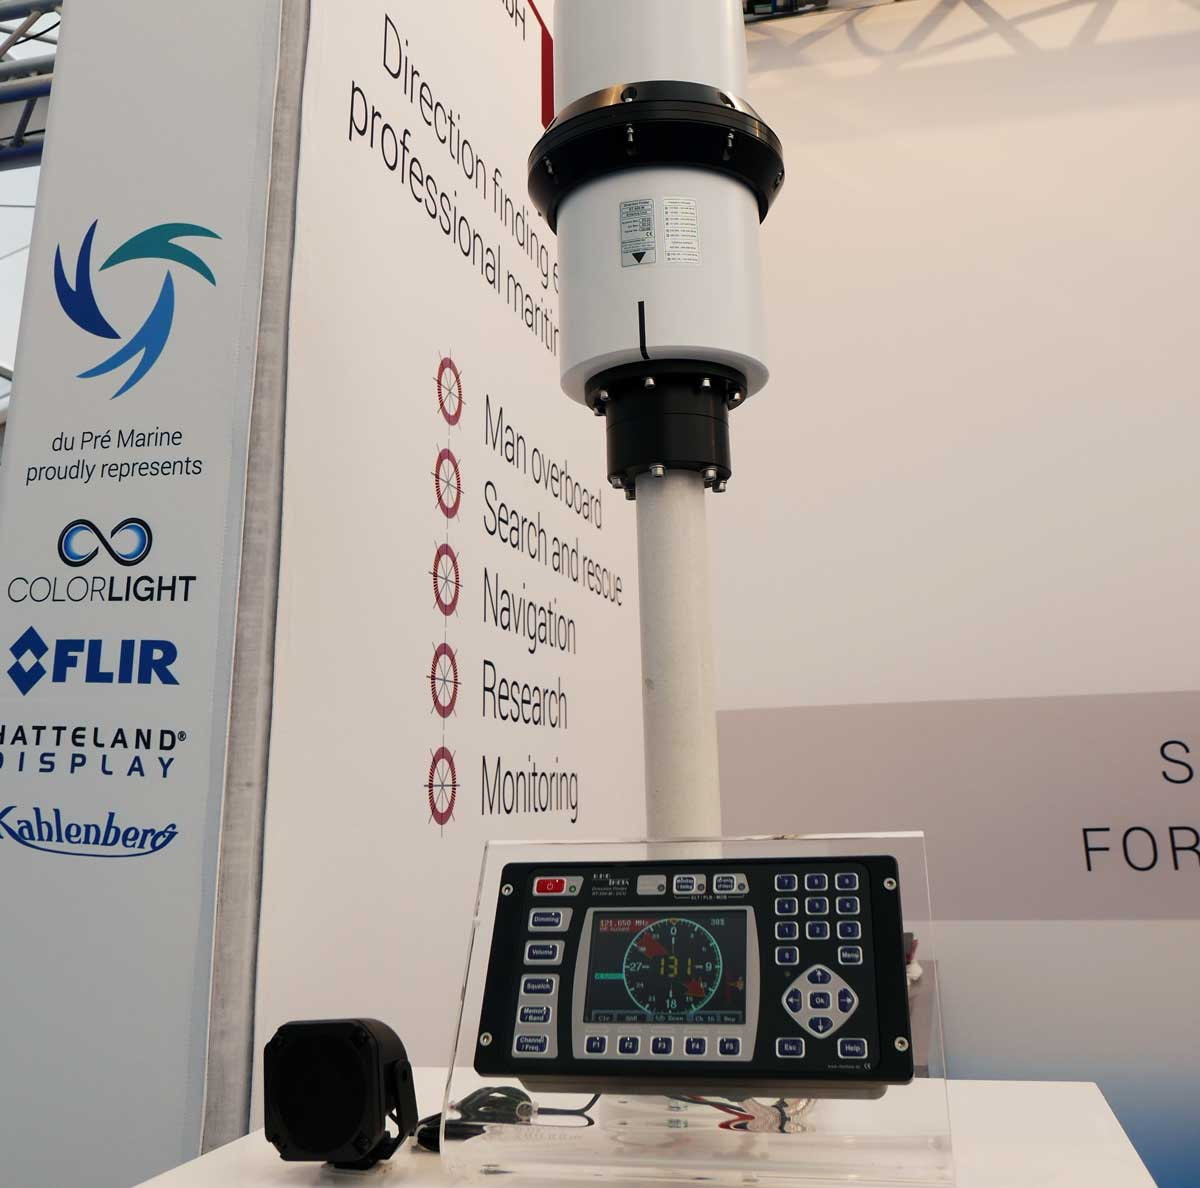 Rhotheta RT-500-M radio direction finder on the du Pre Marine stand at Seawork 2017